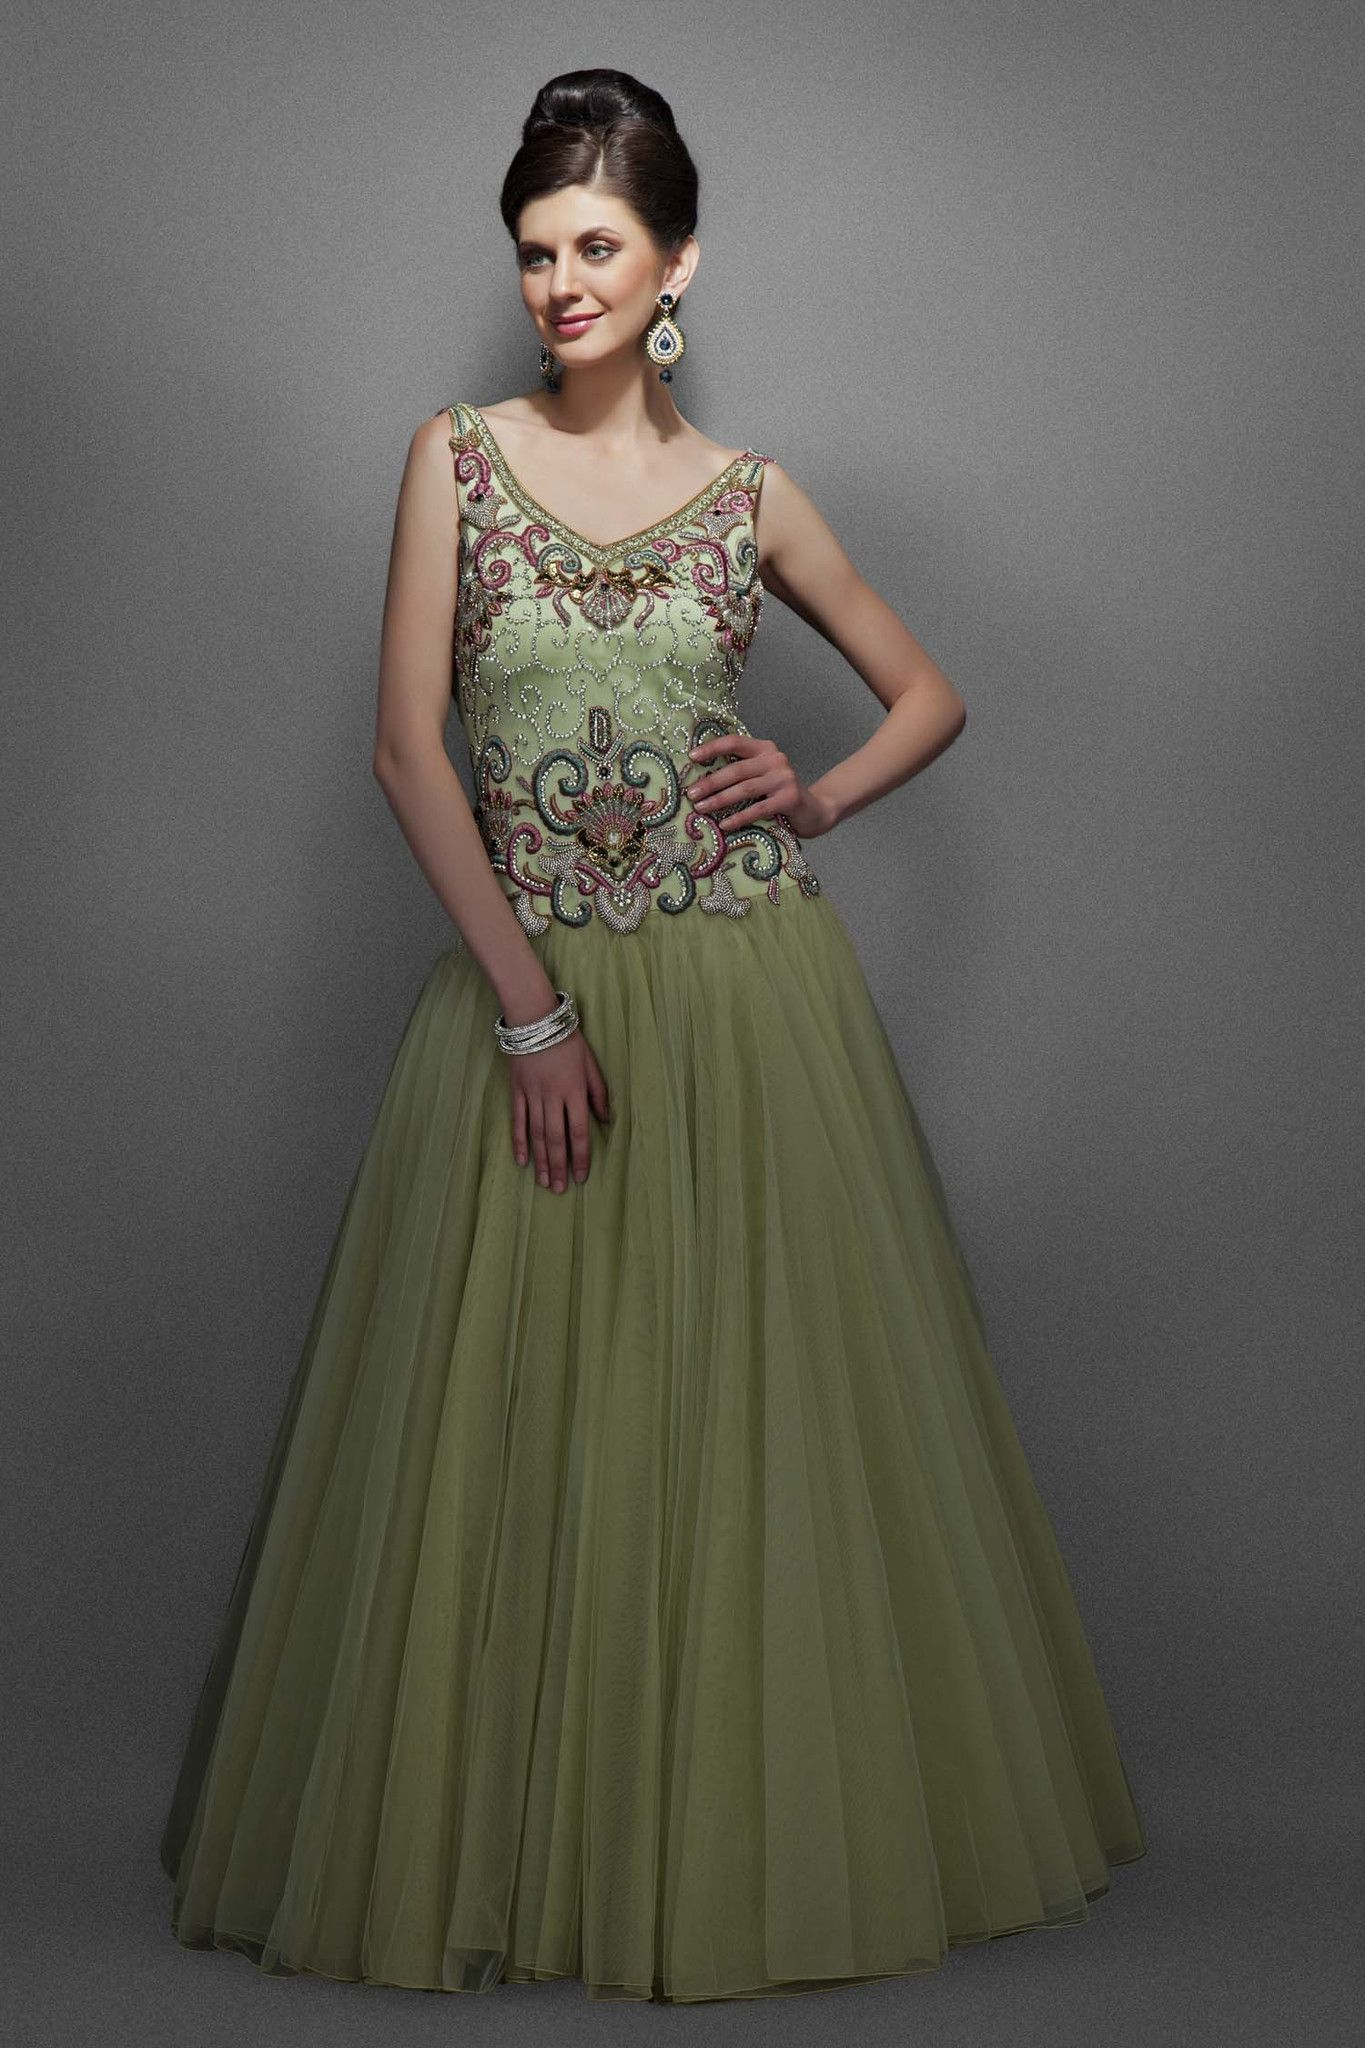 Dusky green color Indo Western bridal gown | Green colors, Bridal ...